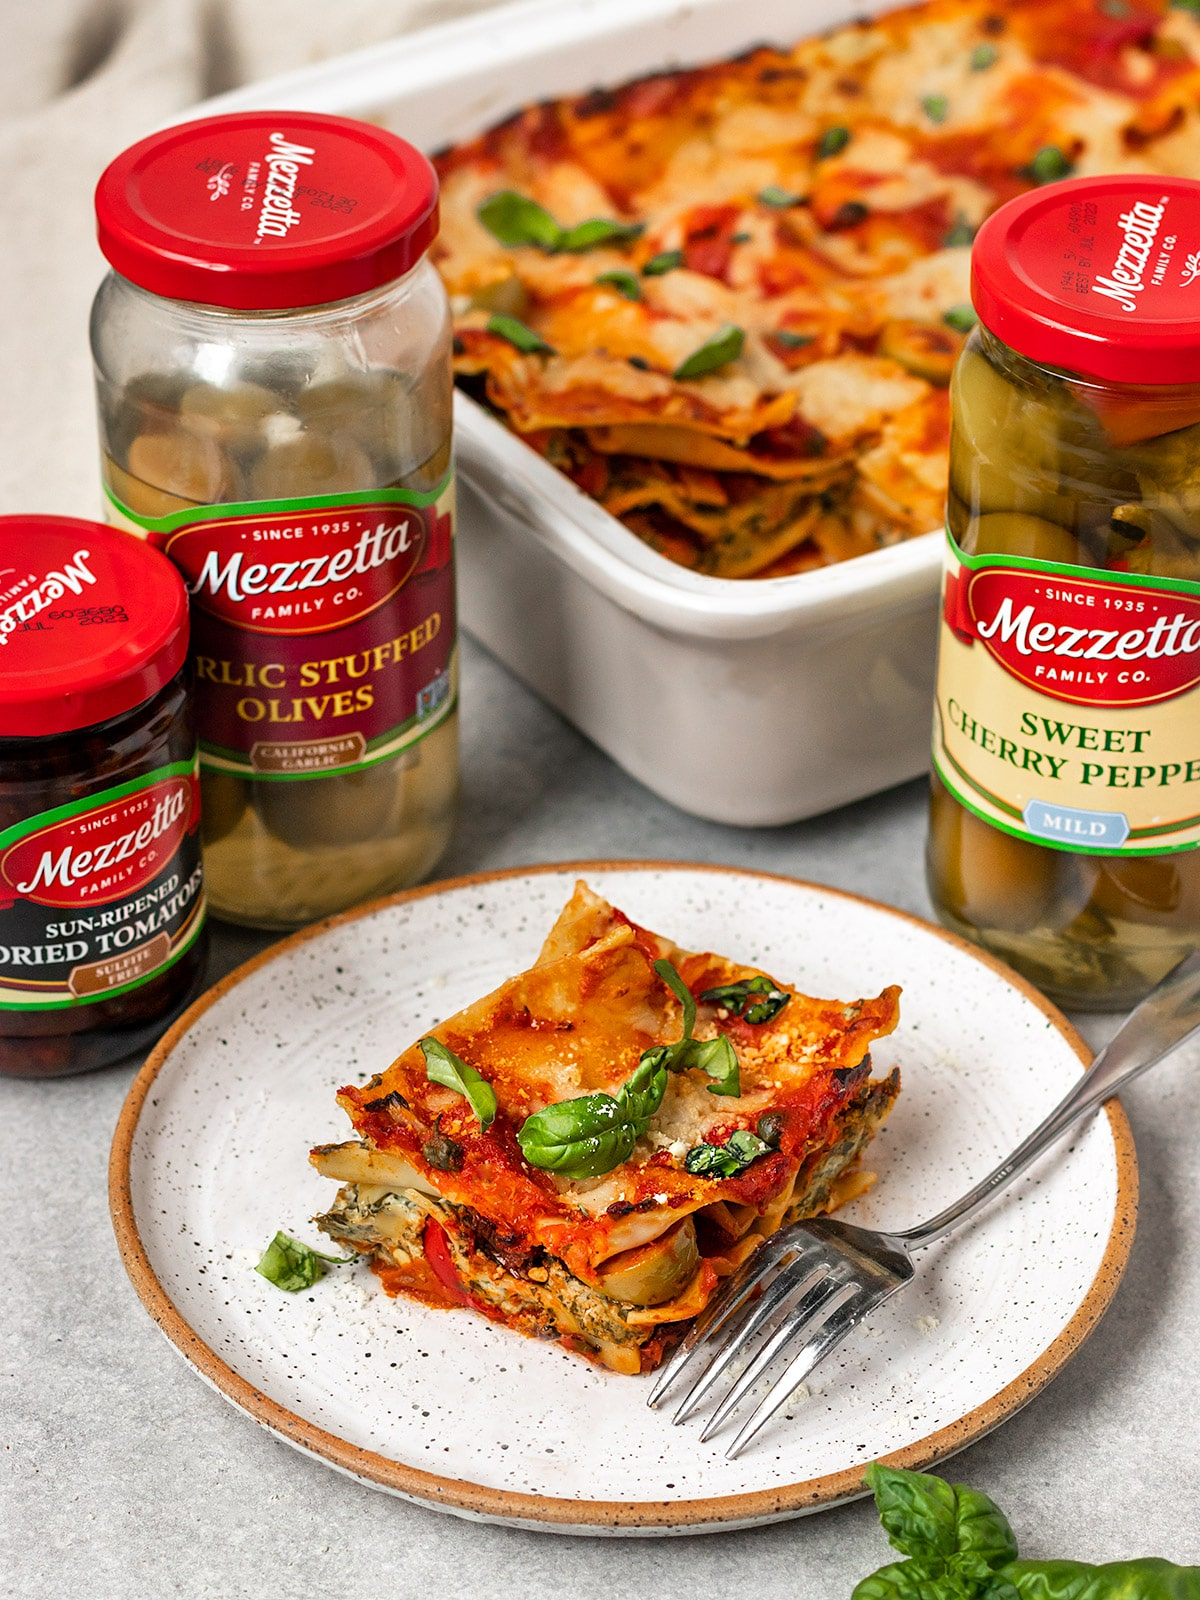 slice of lasagna on a plate surrounded by mezzetta bottles of sweet cherry peppers, sun dried tomatoes, and garlic stuffed olives